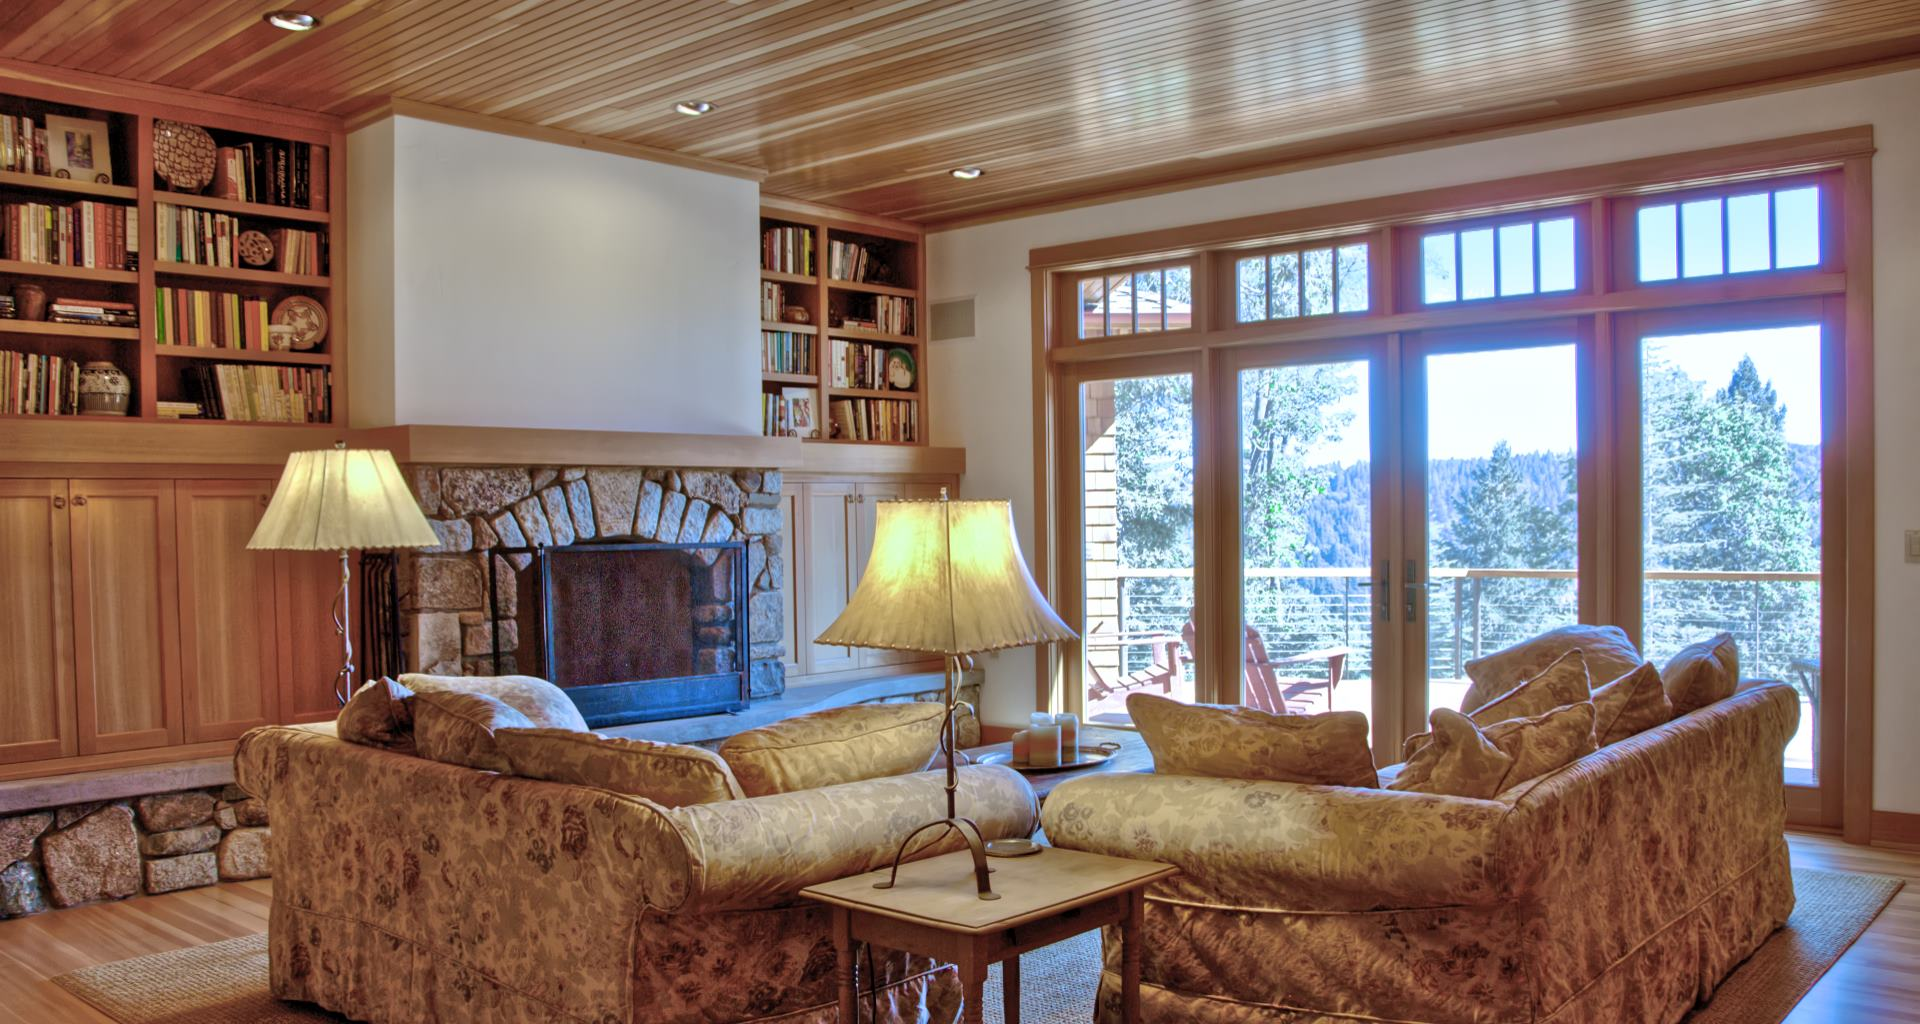 Sierra Pines living room interior